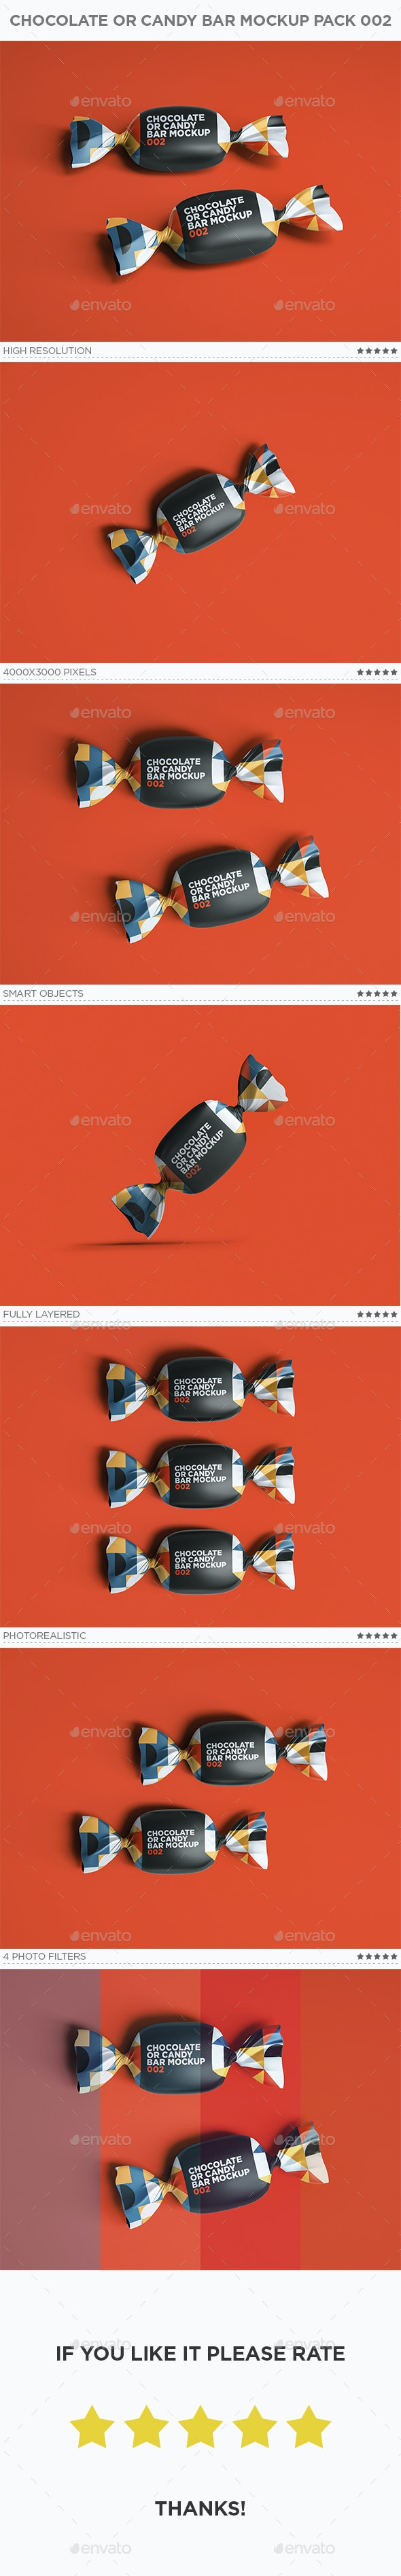 Chocolate or Candy Bar Mockup 002 - Food and Drink Packaging